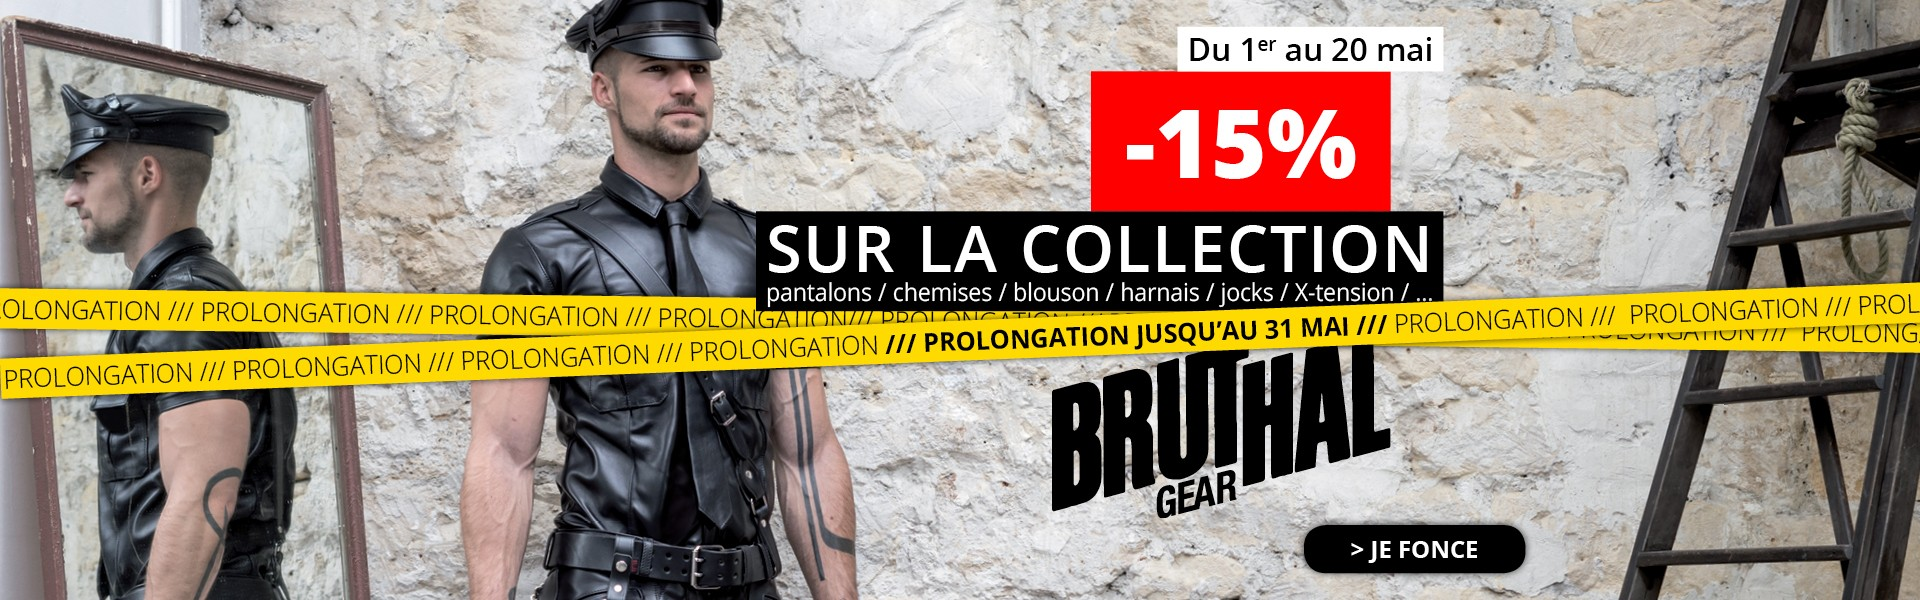 Promotion Bruthal Gear